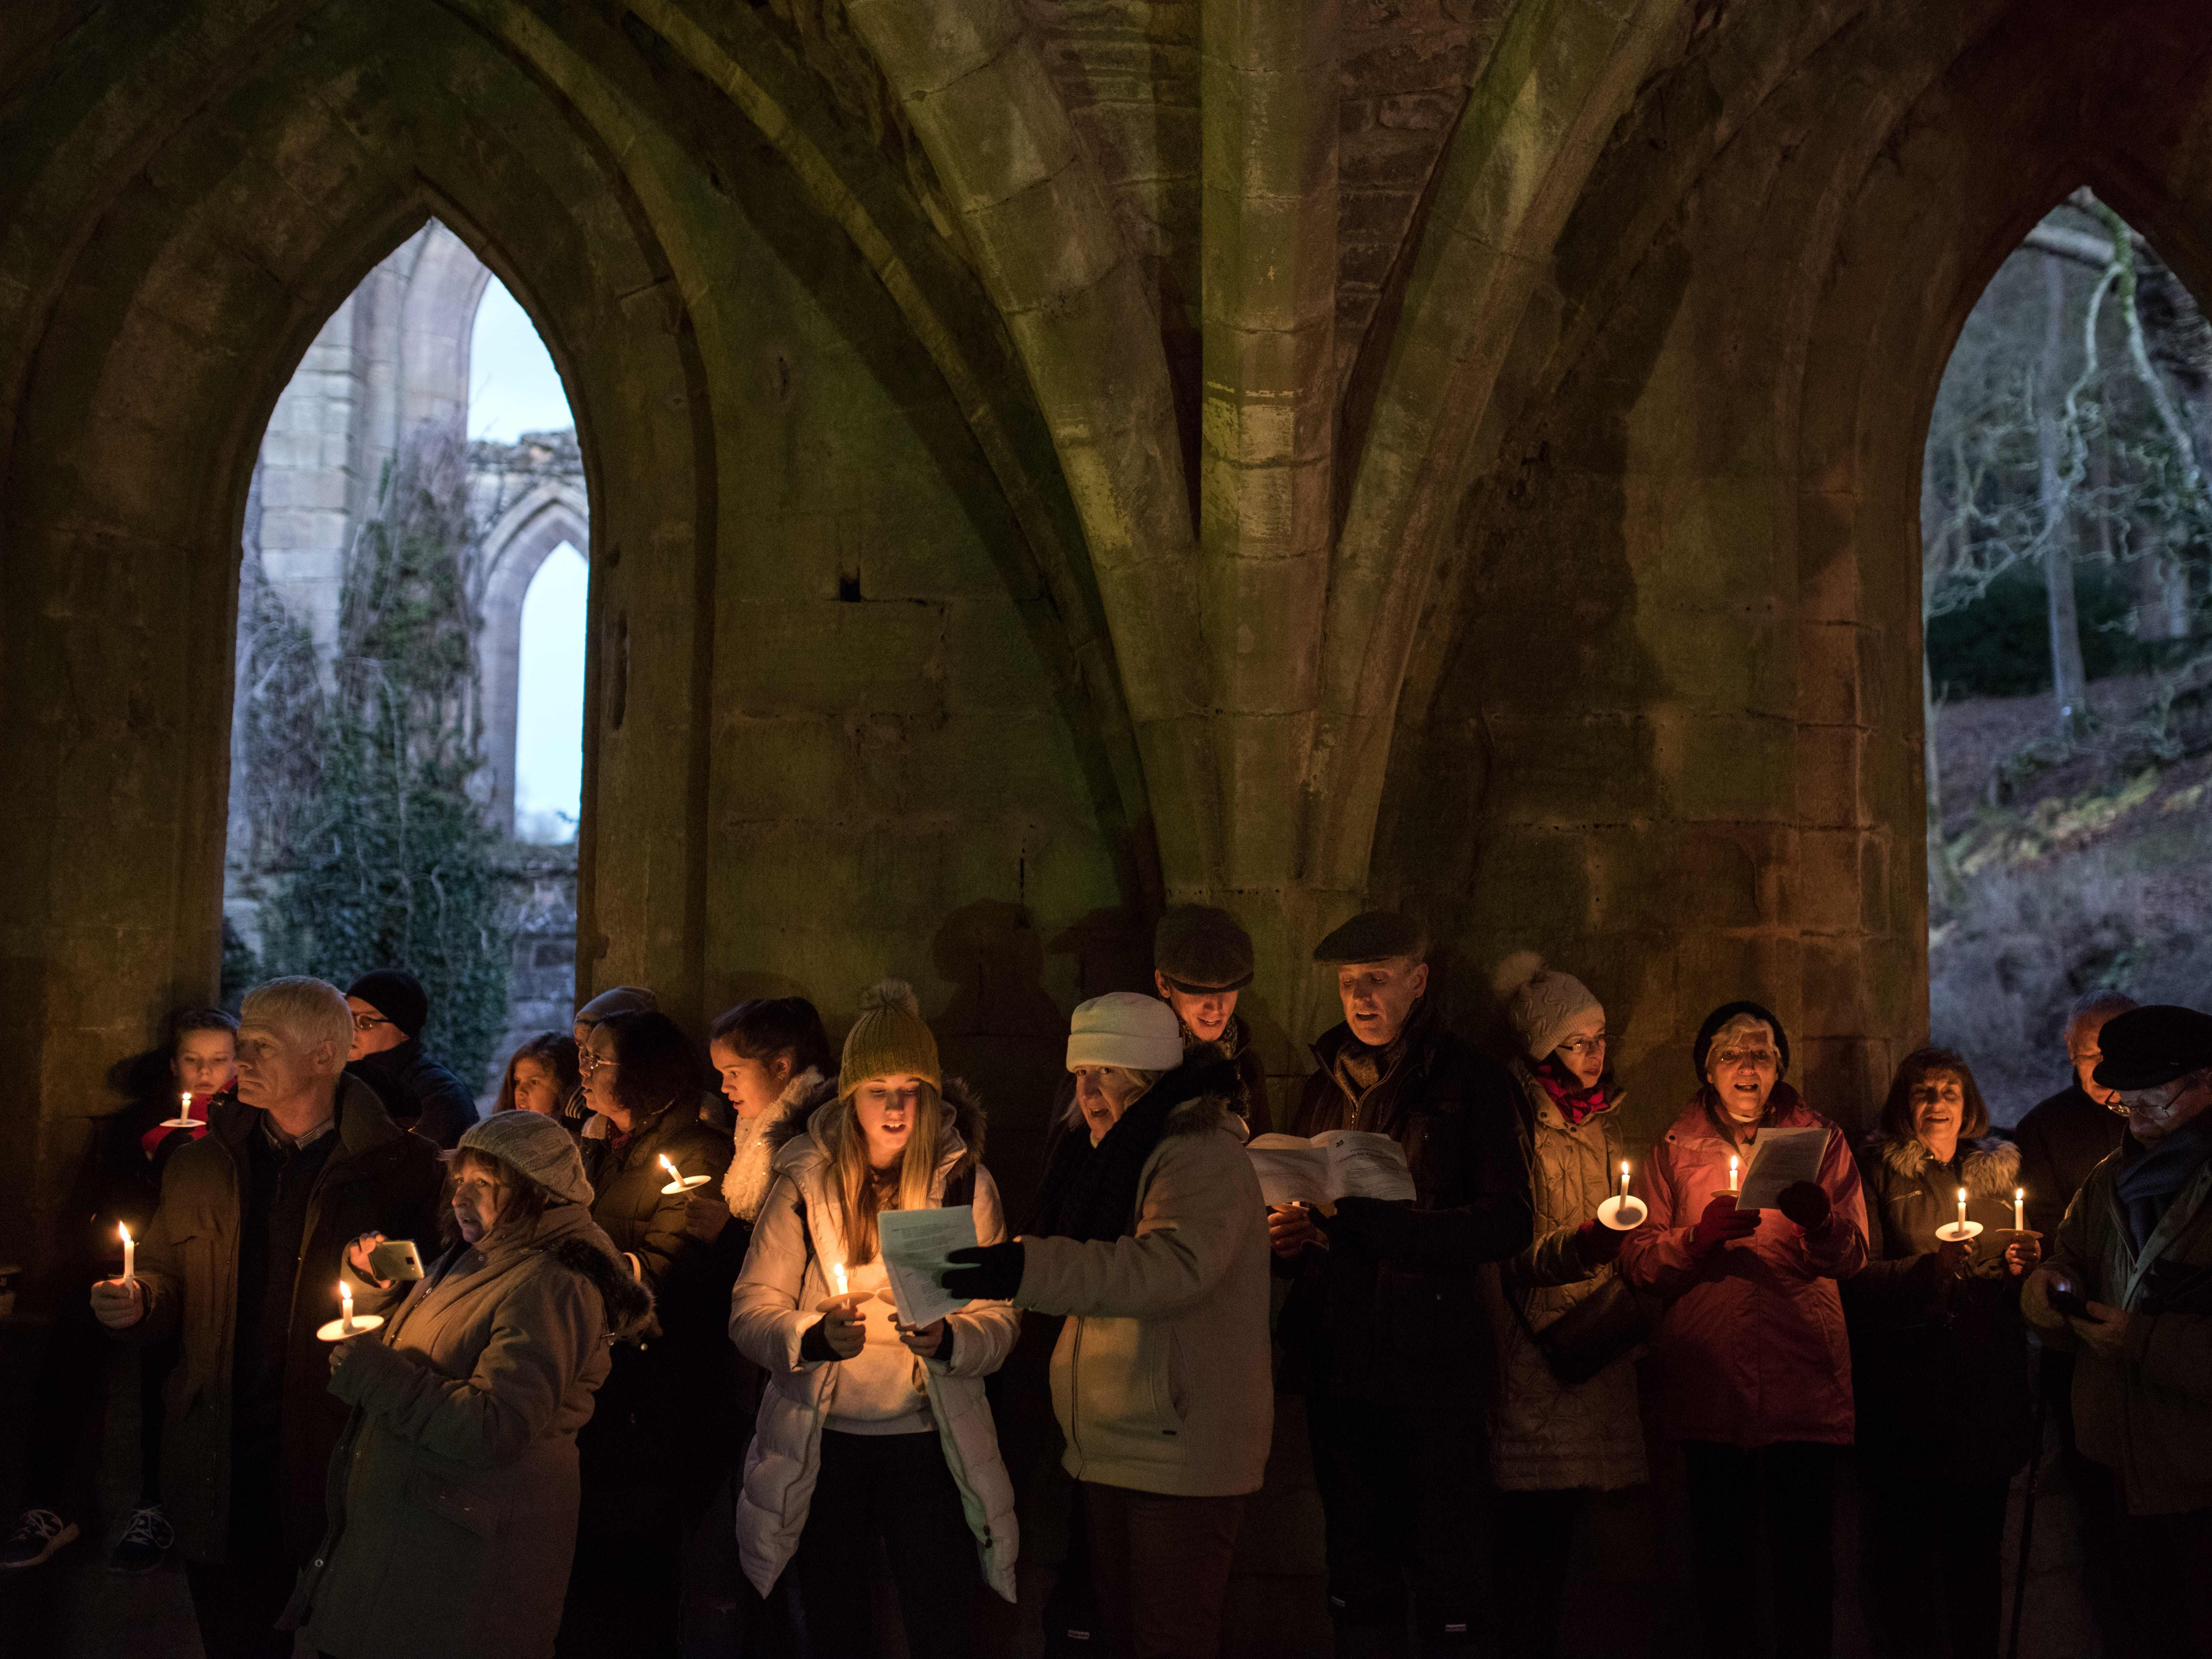 """People attend the annual """"Carols by Candlelight"""" service, which features nearly 1,000 candles, in the cellarium area of the ruins of Fountains Abbey in northern England on December 9, 2018. The abbey, which was founded in 1132 by 13 Benedictine monks, is designated as a UNESCO World Heritage Site and is owned and managed by the National Trust."""